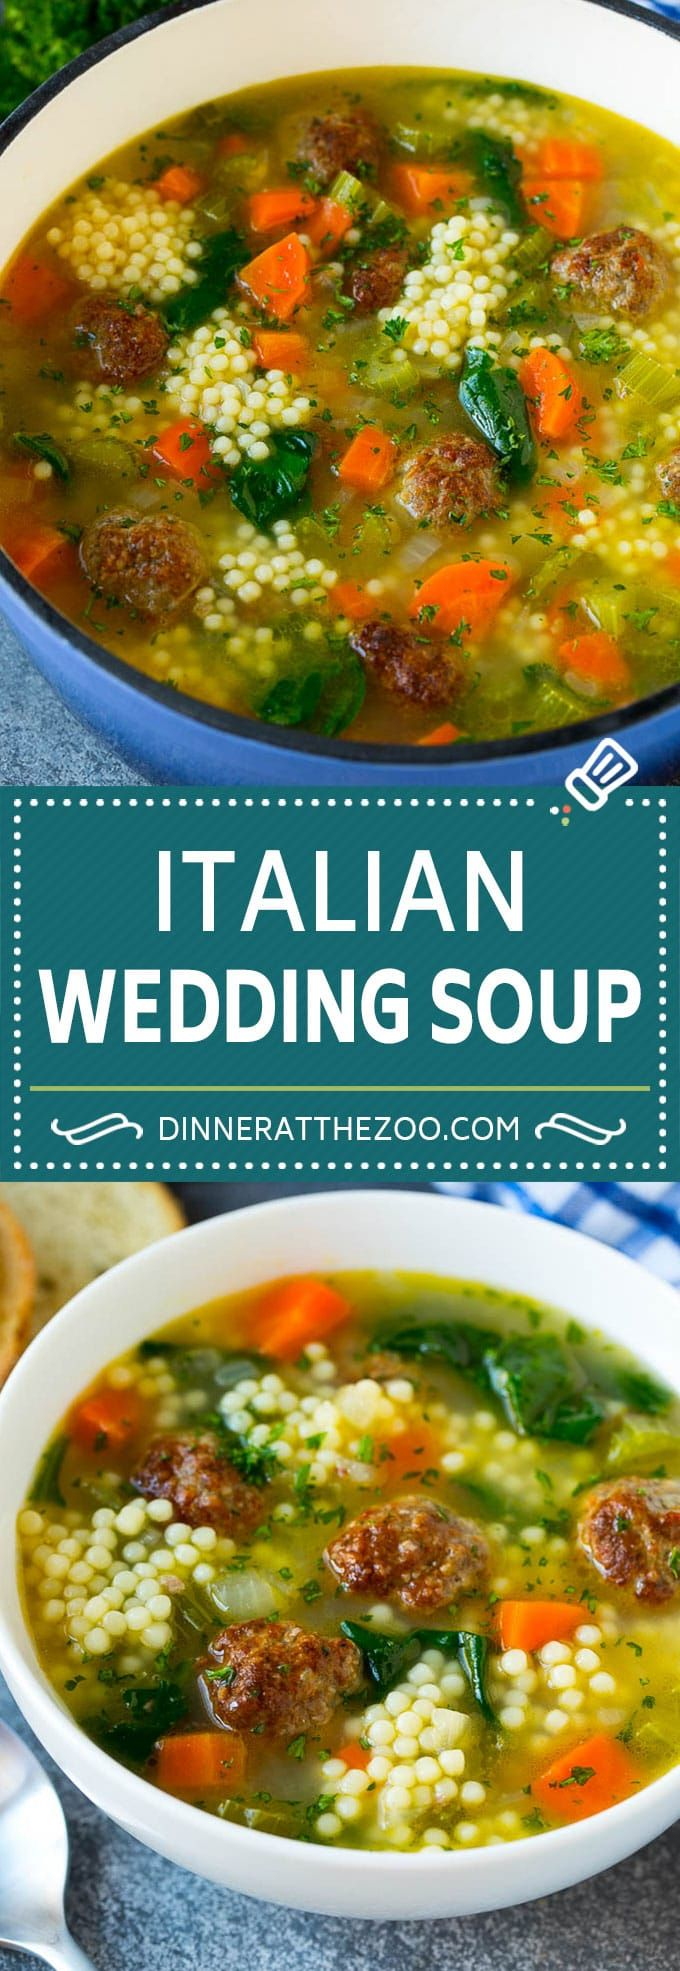 Italian Wedding Soup - Dinner at the Zoo